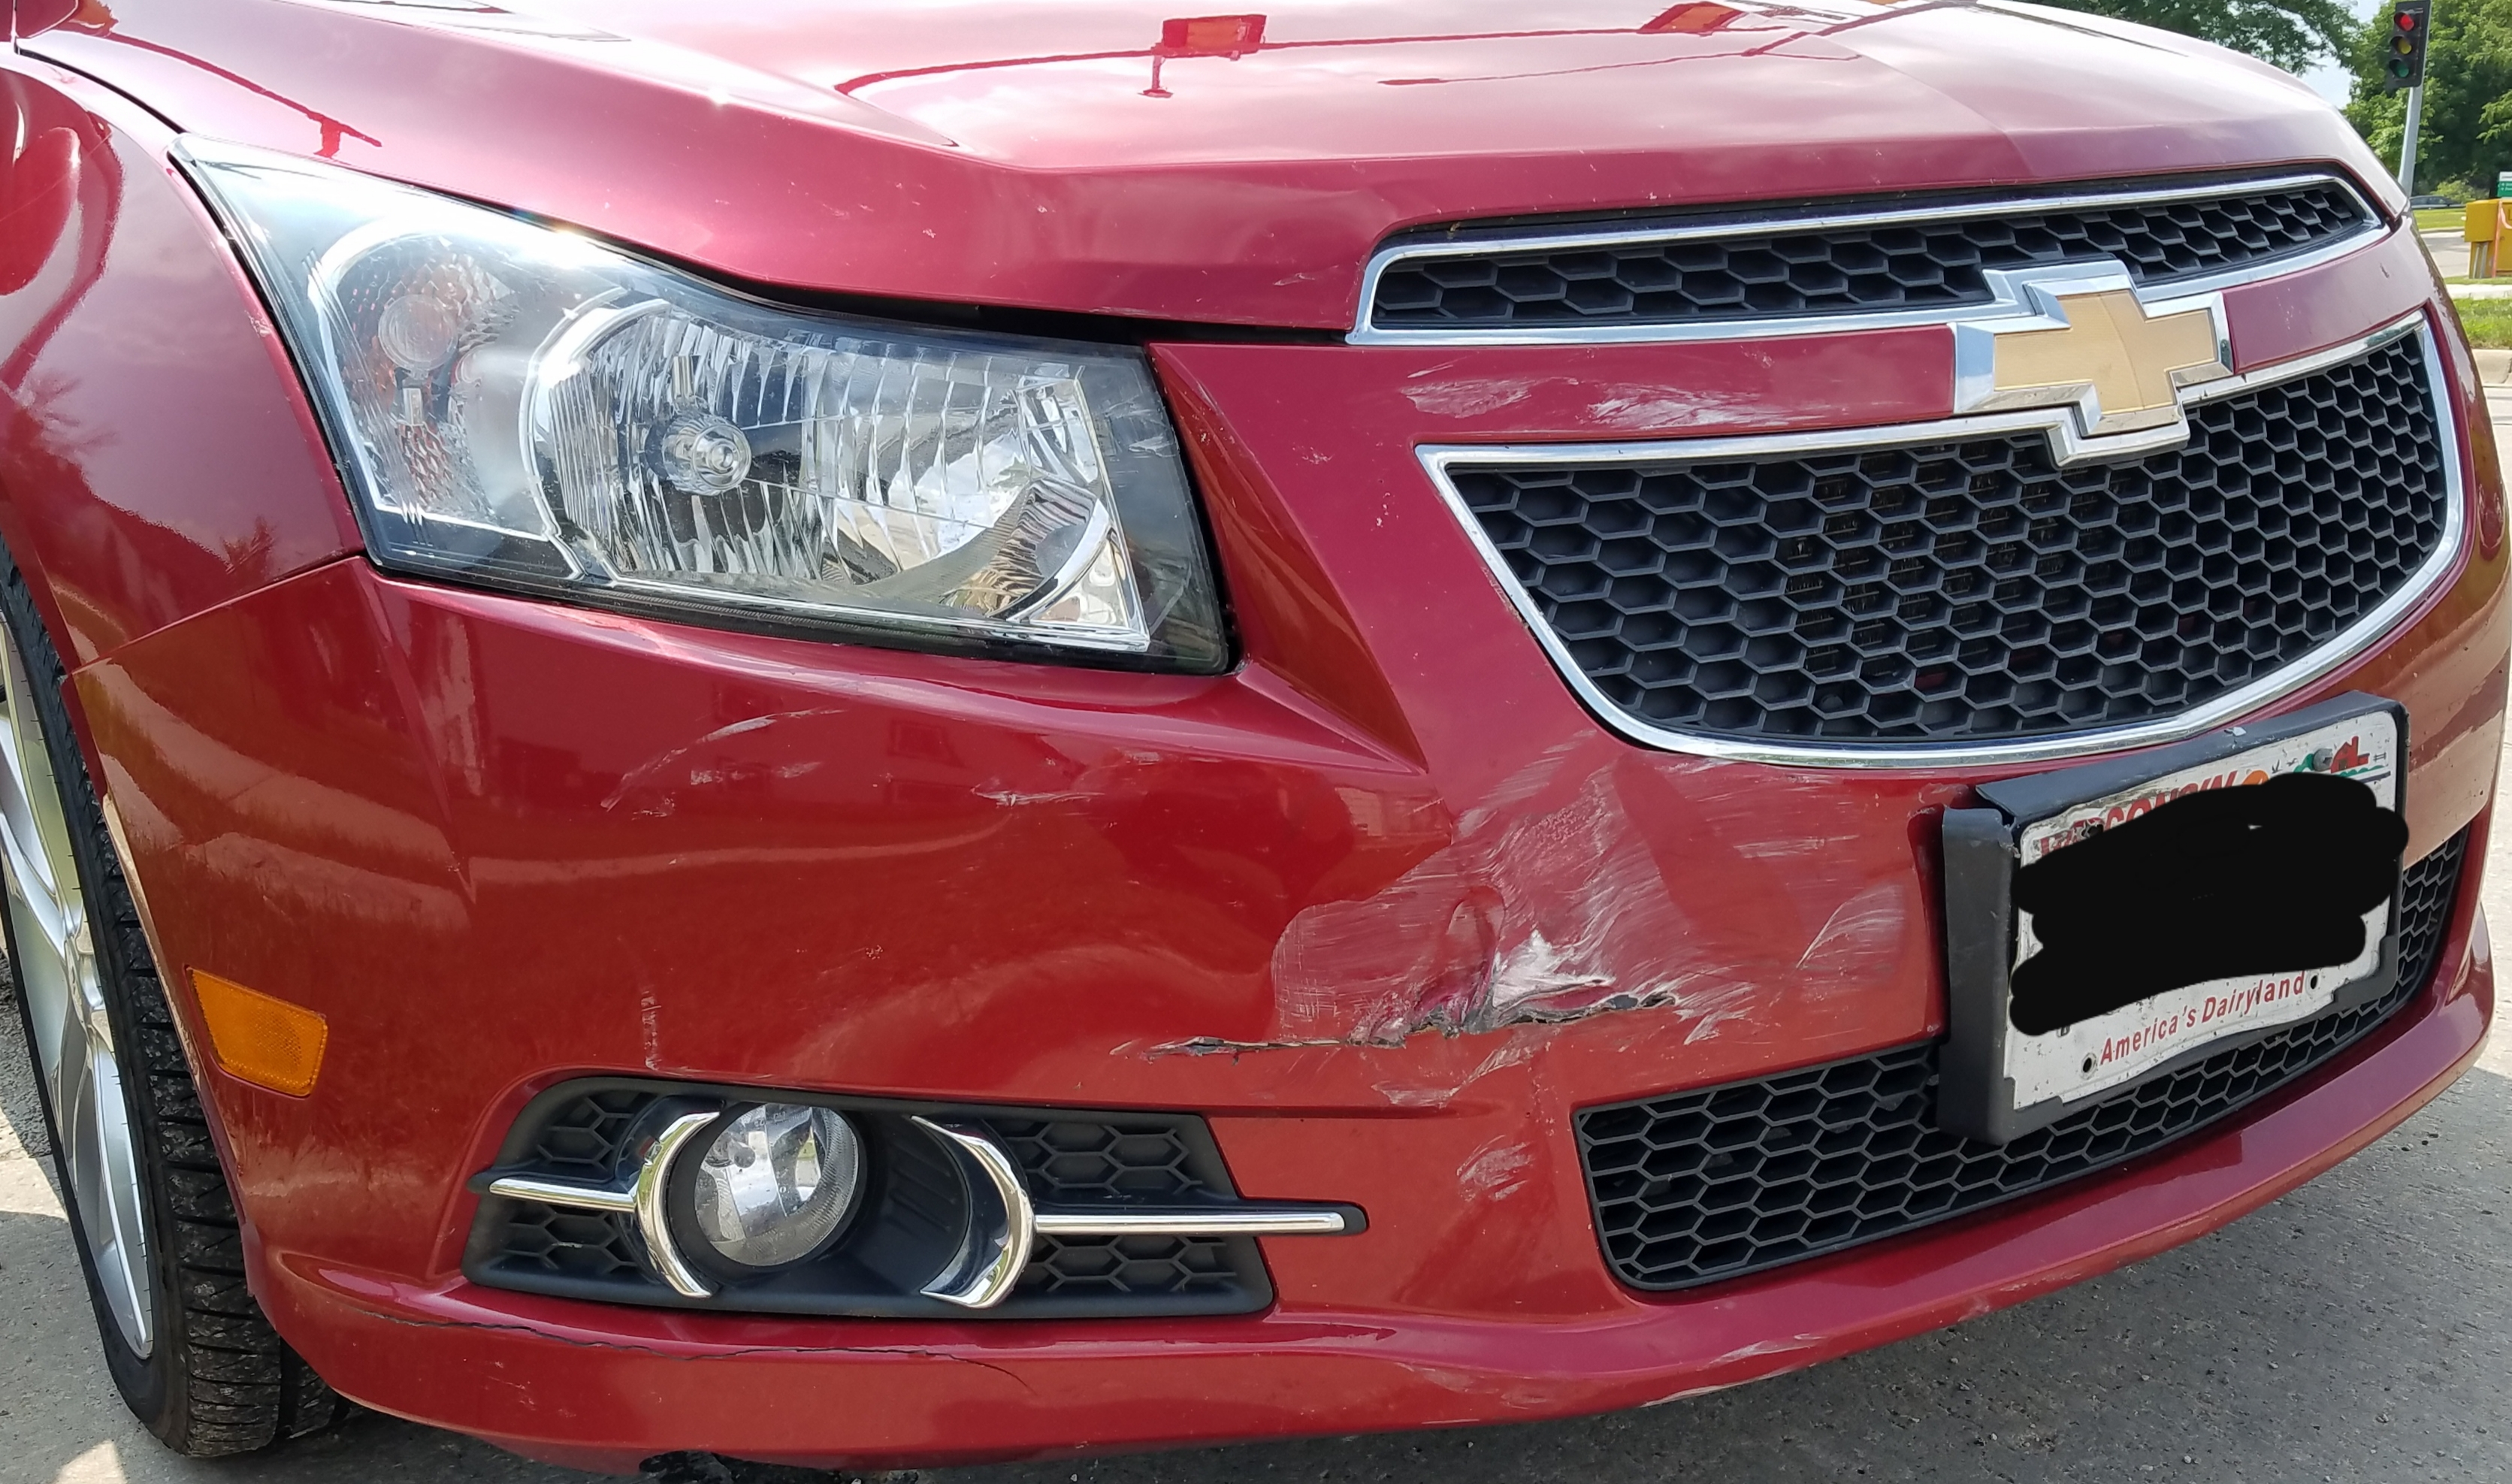 Accident  Fight with Insurance company over liability  Help